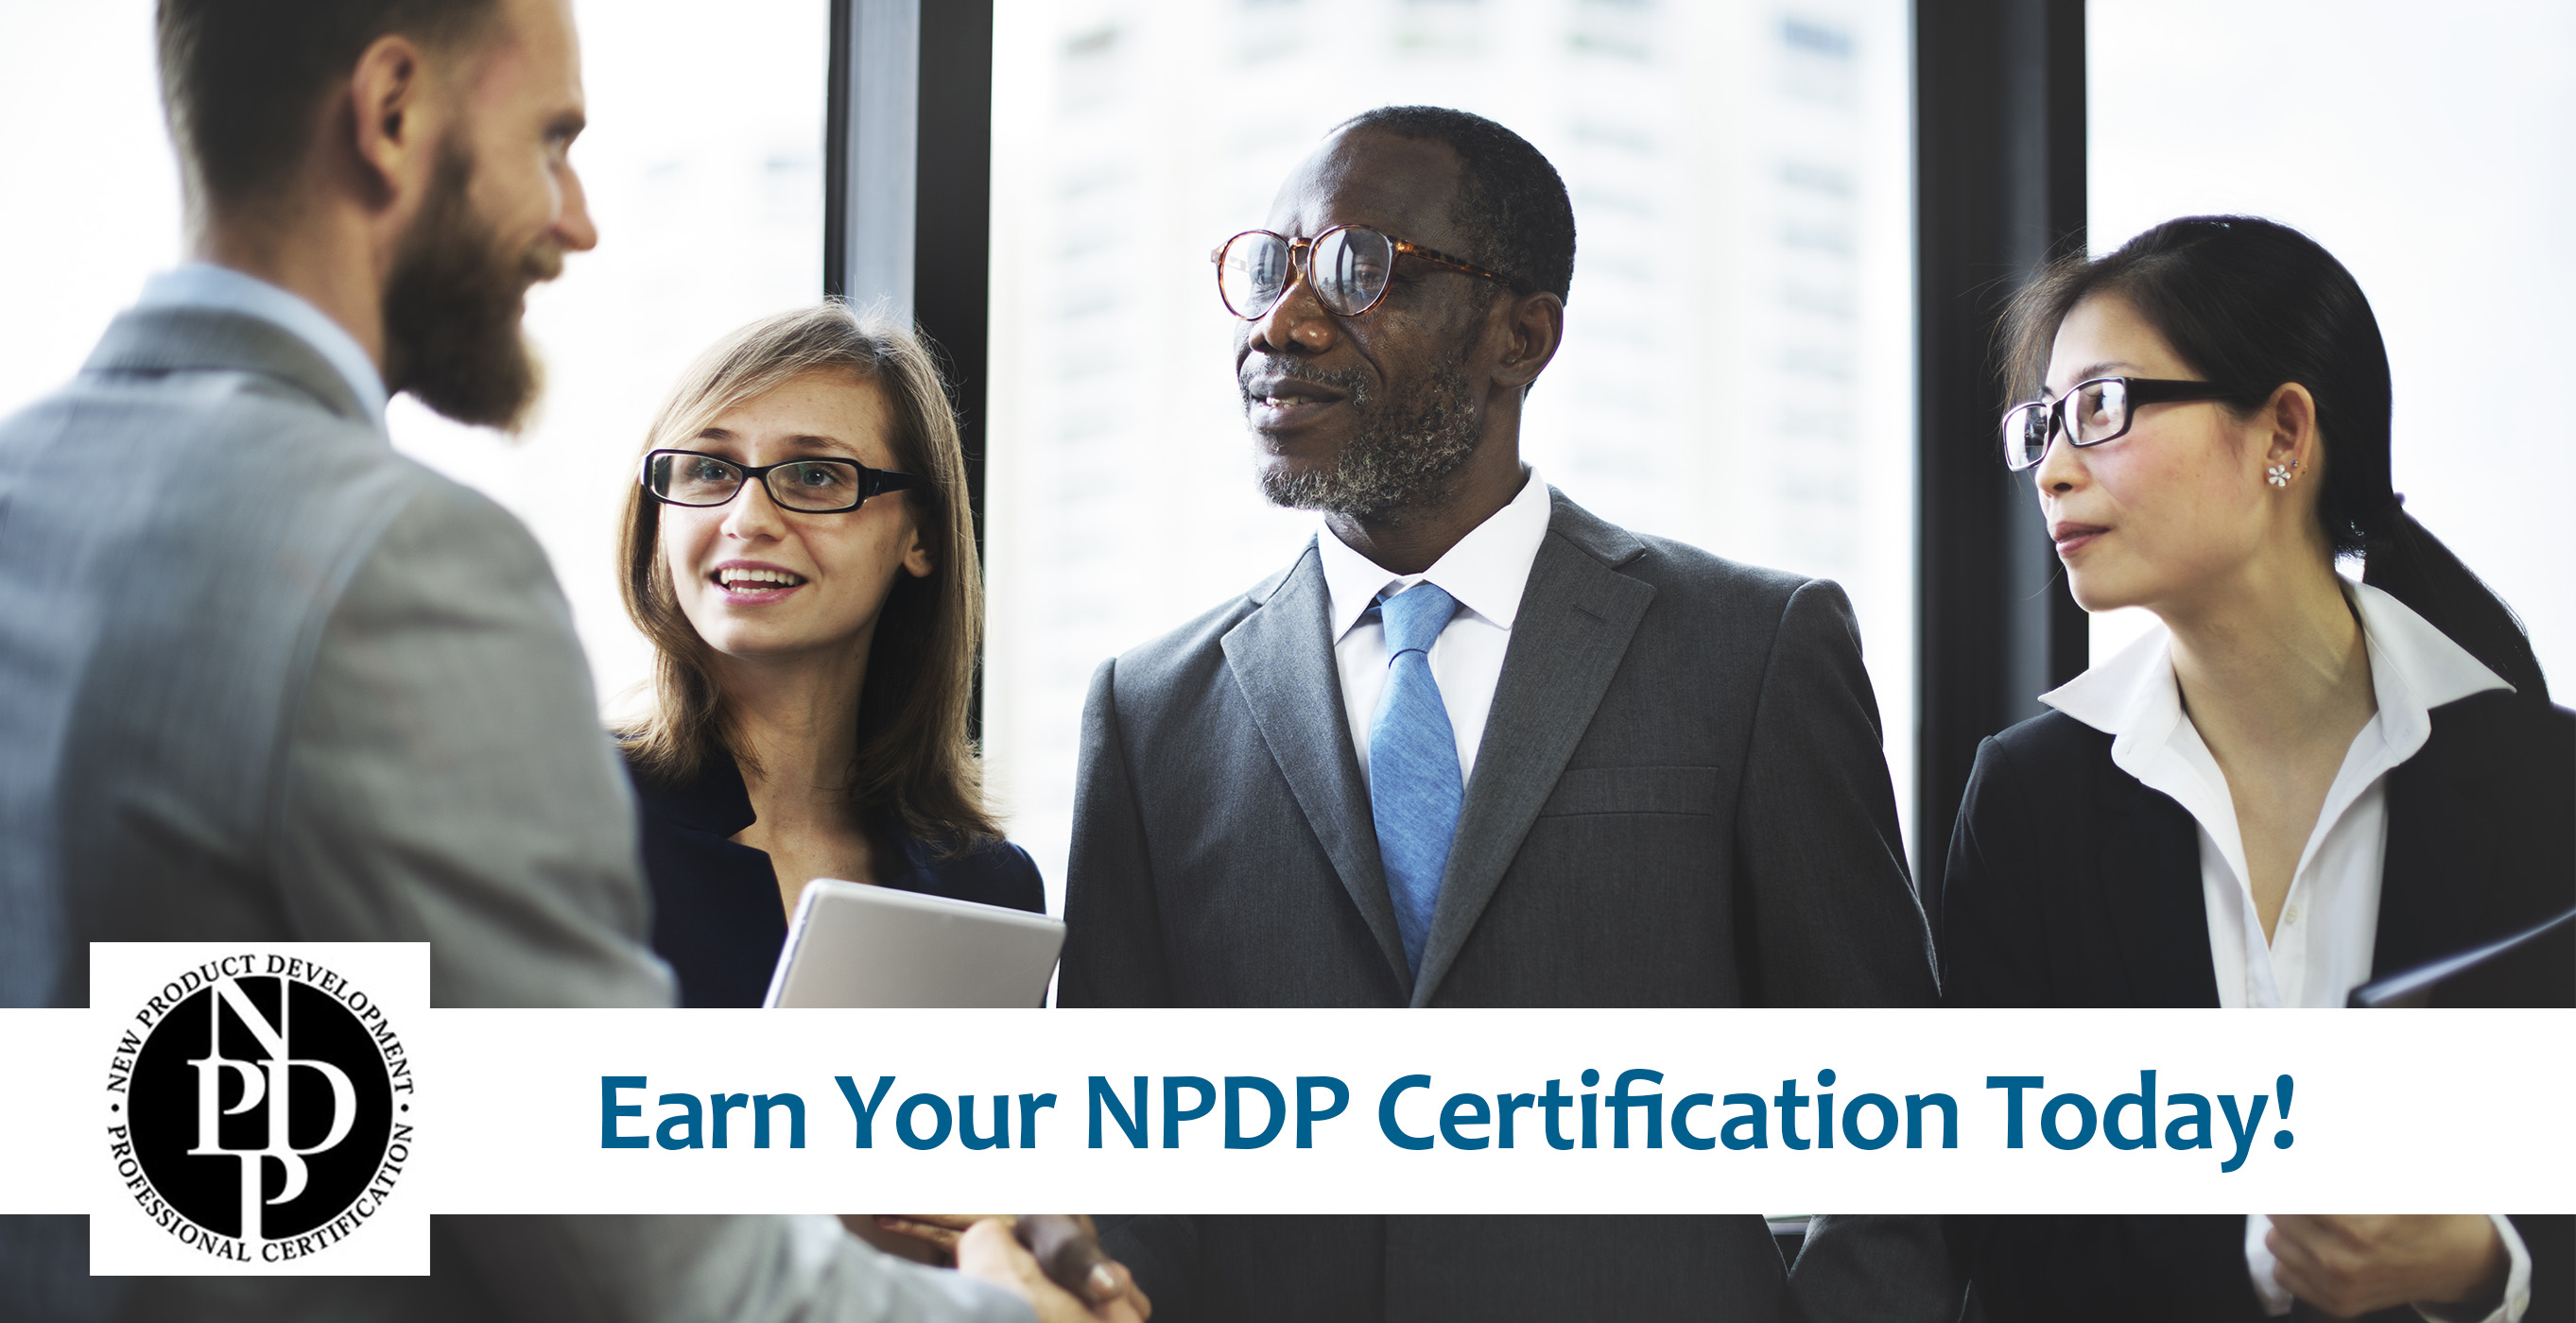 Earn your certification today